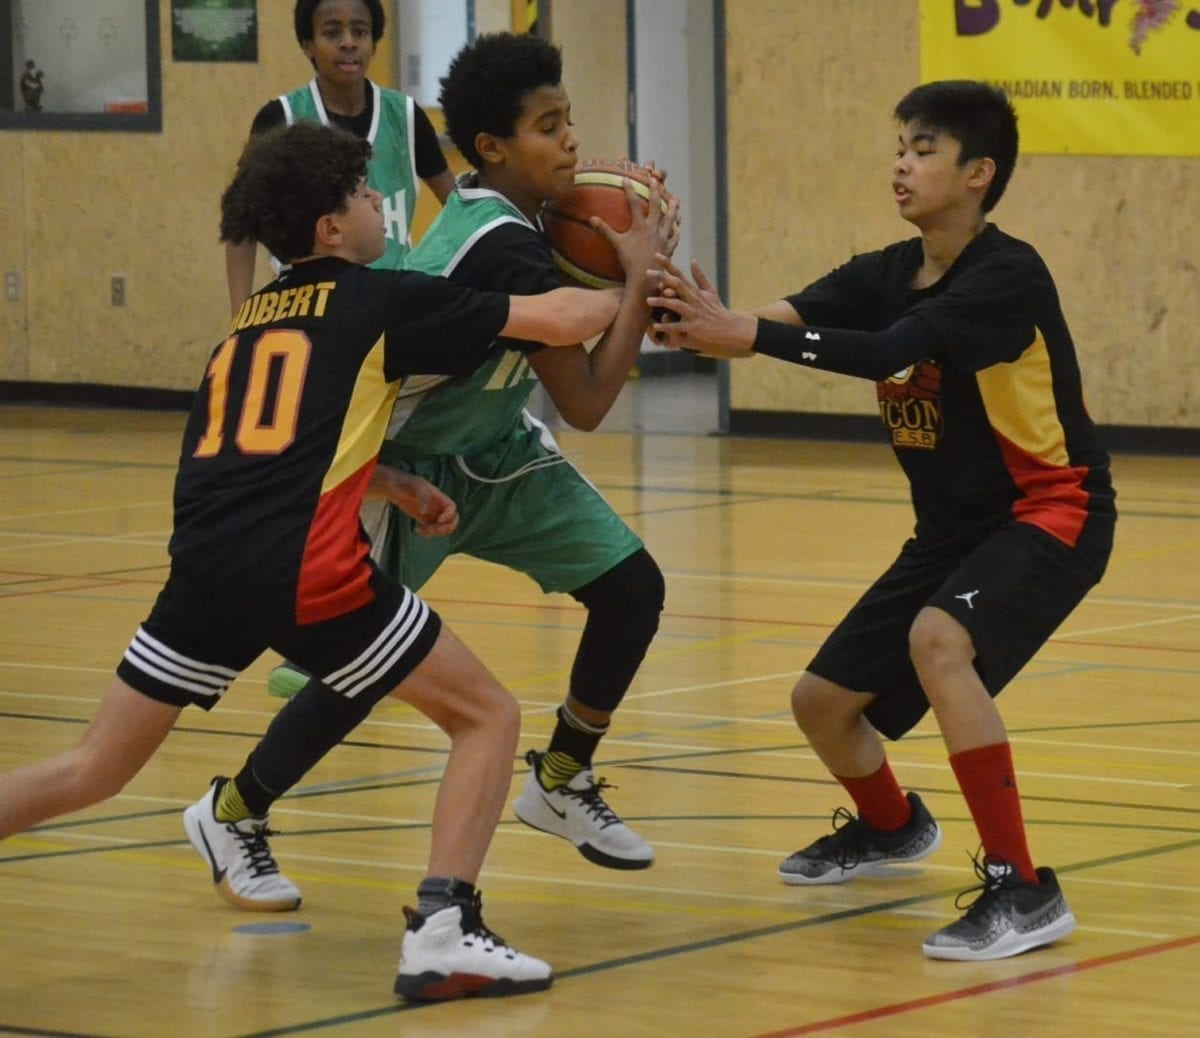 Francesco Stefanos of St. Pat's drives the lane against two defenders from Hay River's Ecole Boreale during Grade 8 boys playoff action in the Junior Cager basketball tournament at St. Pat's Gymnasium on Sunday. James McCarthy/NNSL photo